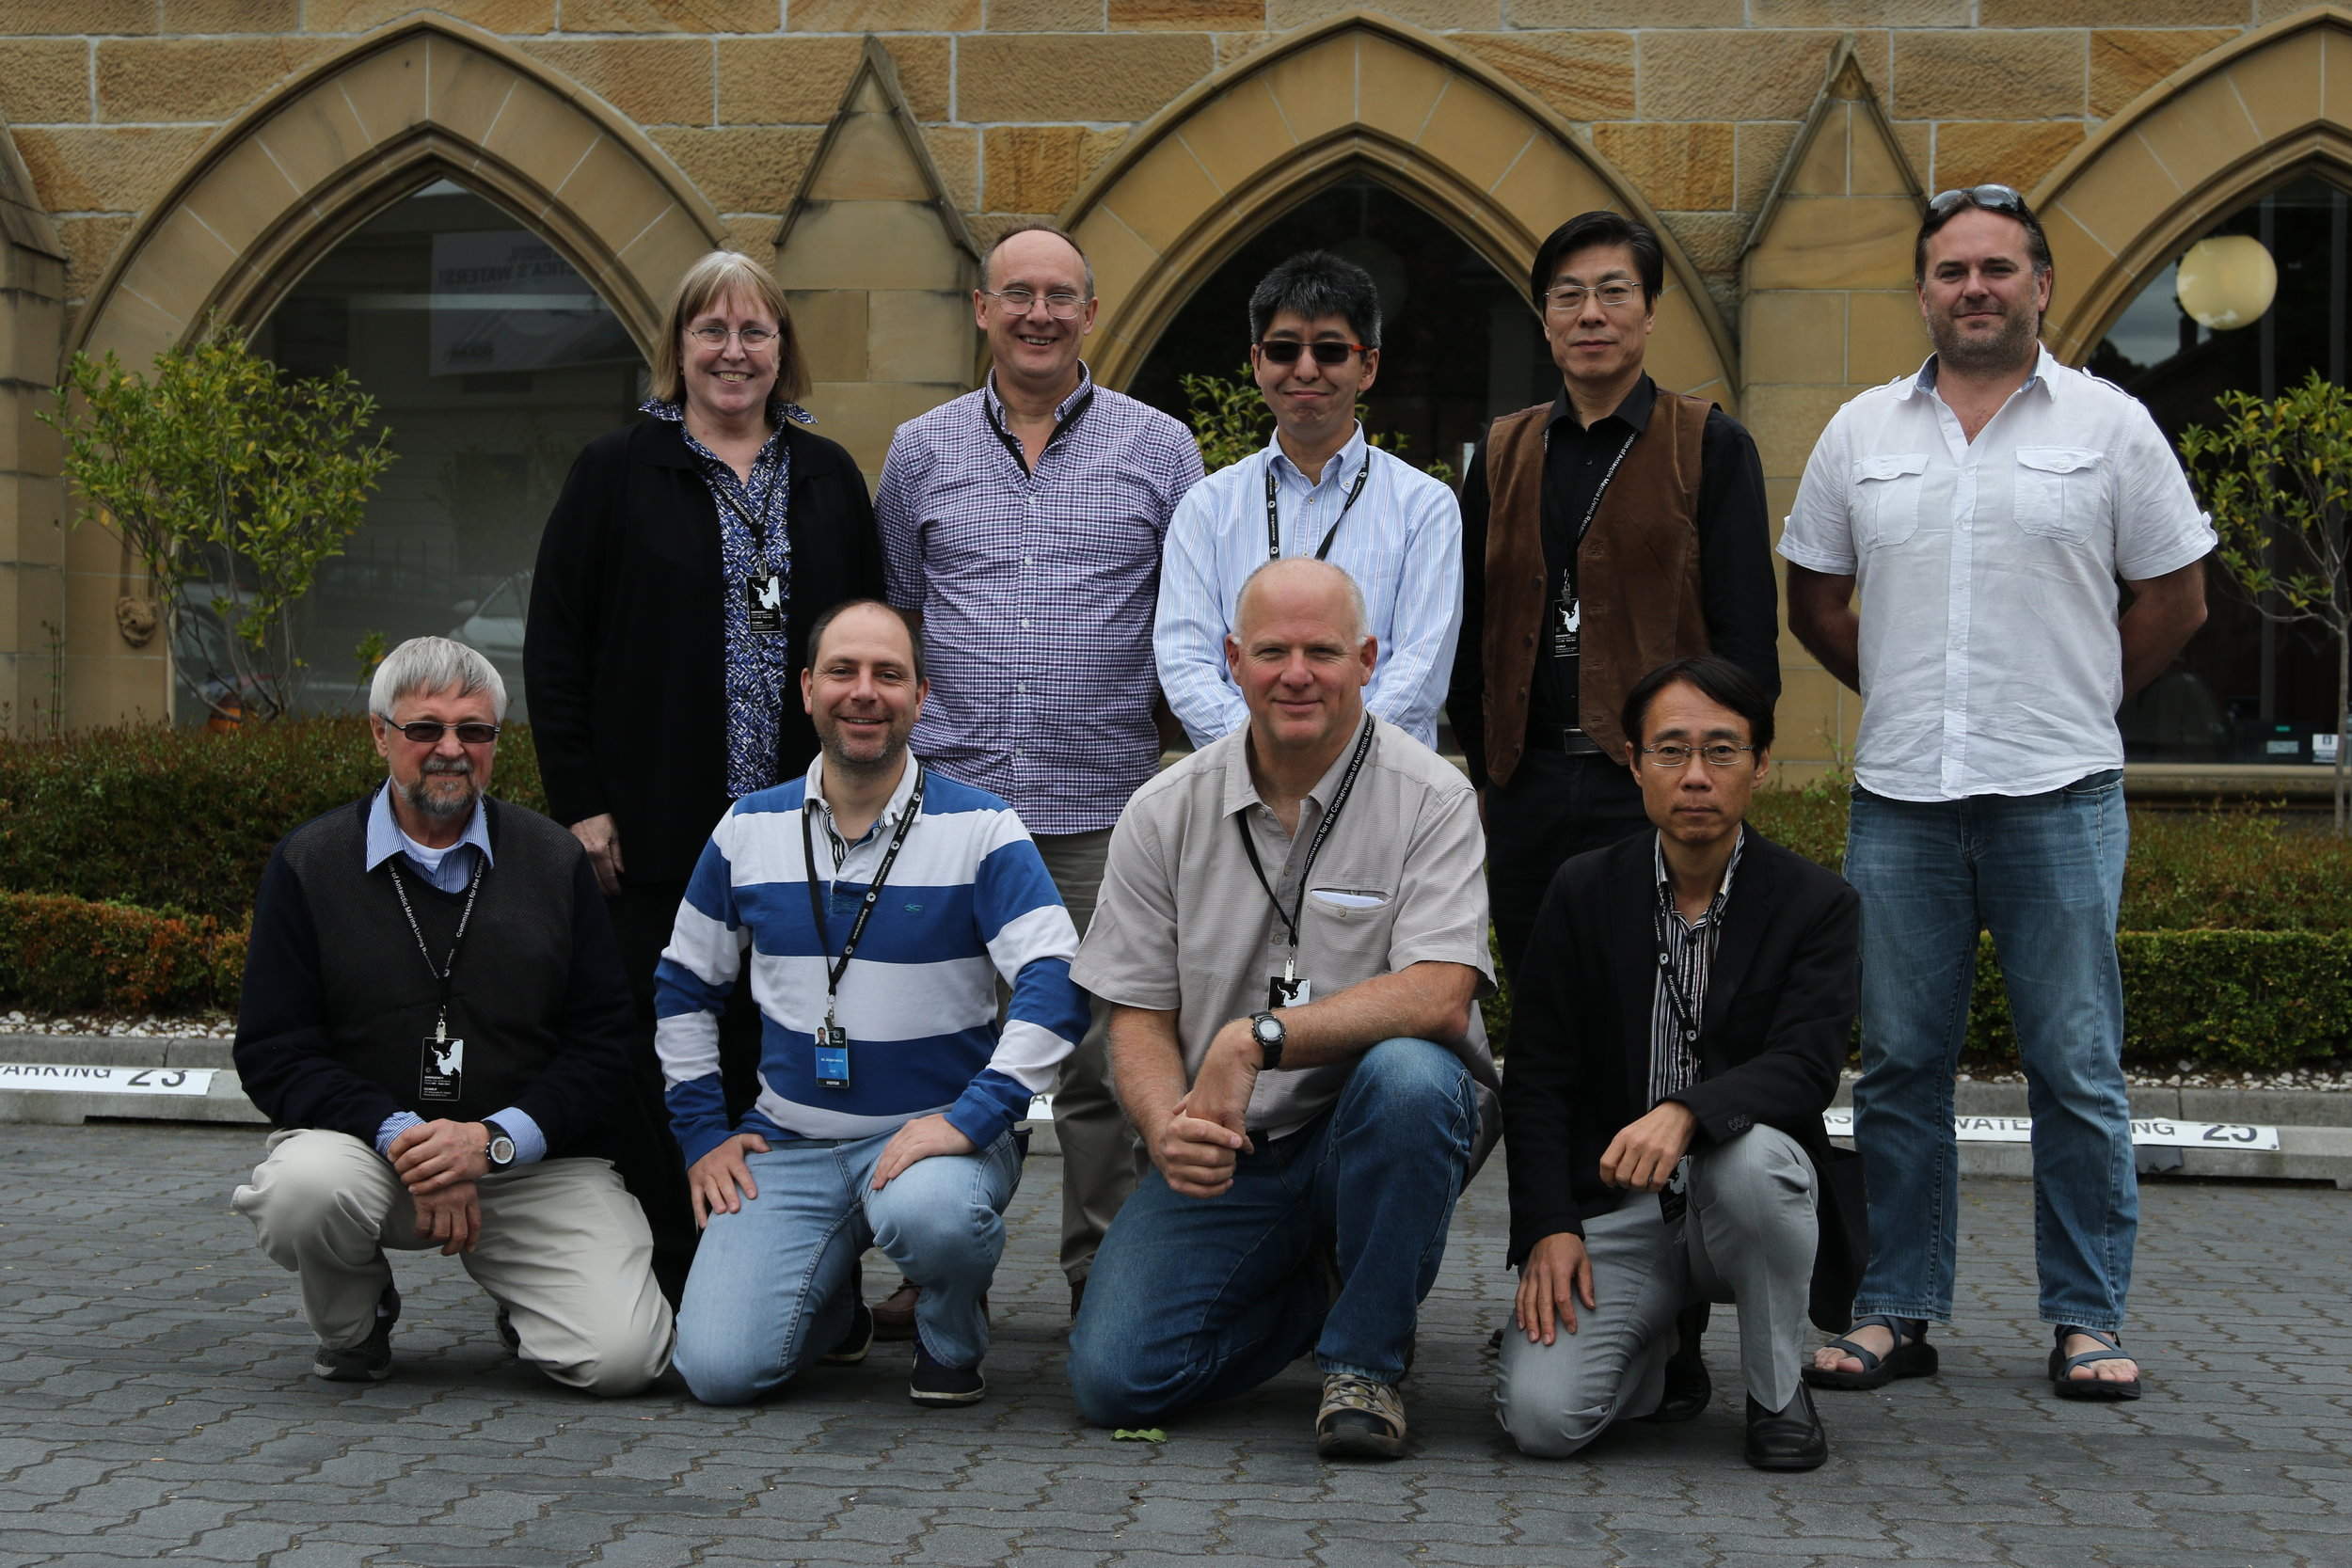 Photo: The founding Science Advisory Group from 2009 with Dr. Polly A. Penhale, Dr. Phil Trathan, Dr. So Kawaguchi, Dr. Andrew Lowther, Dr. Gennadi Milinevsky, Dr. Javier Arata, Dr. Rodolfo Werner and Dr. Taro Ichii